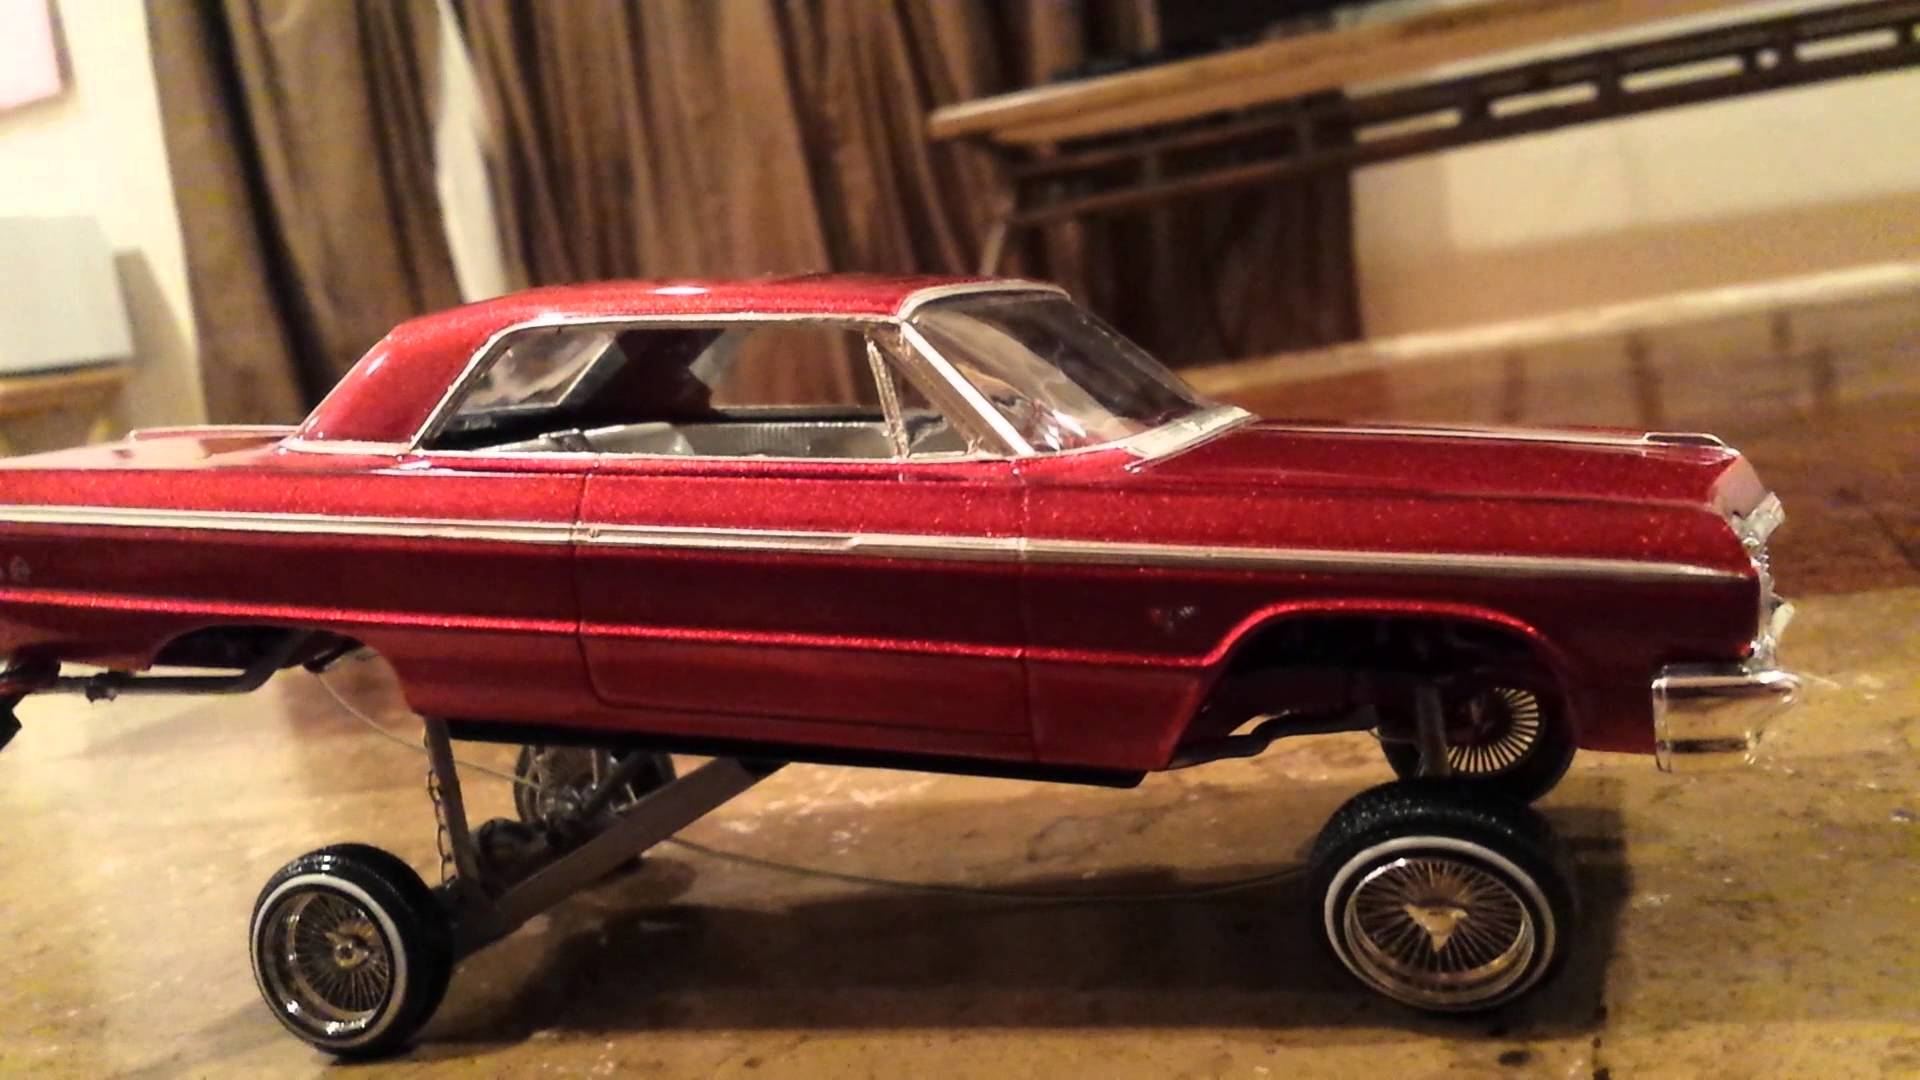 Lowrider Cars for Sale Near Me New 64 Impala Lowrider Model Car Hopper Youtube